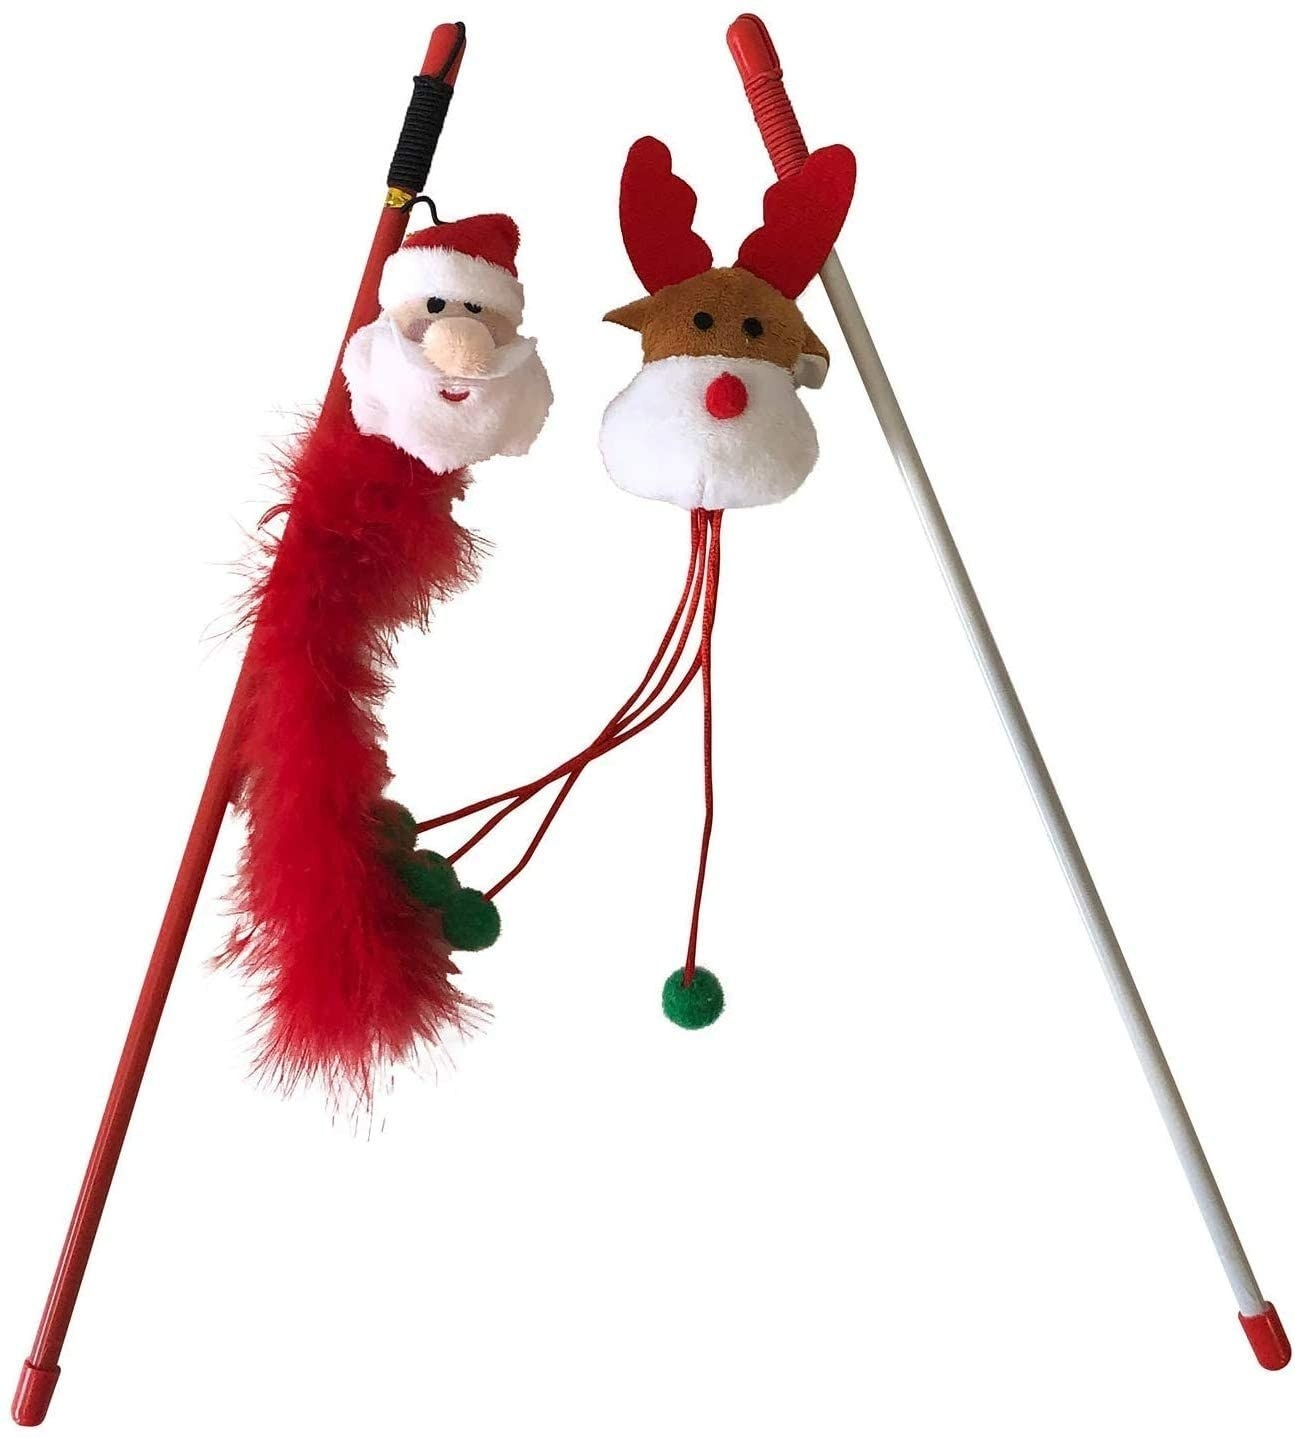 The two wands—one with a plush Santa head and feathers, and the other with a plush reindeer head and a string with a bead